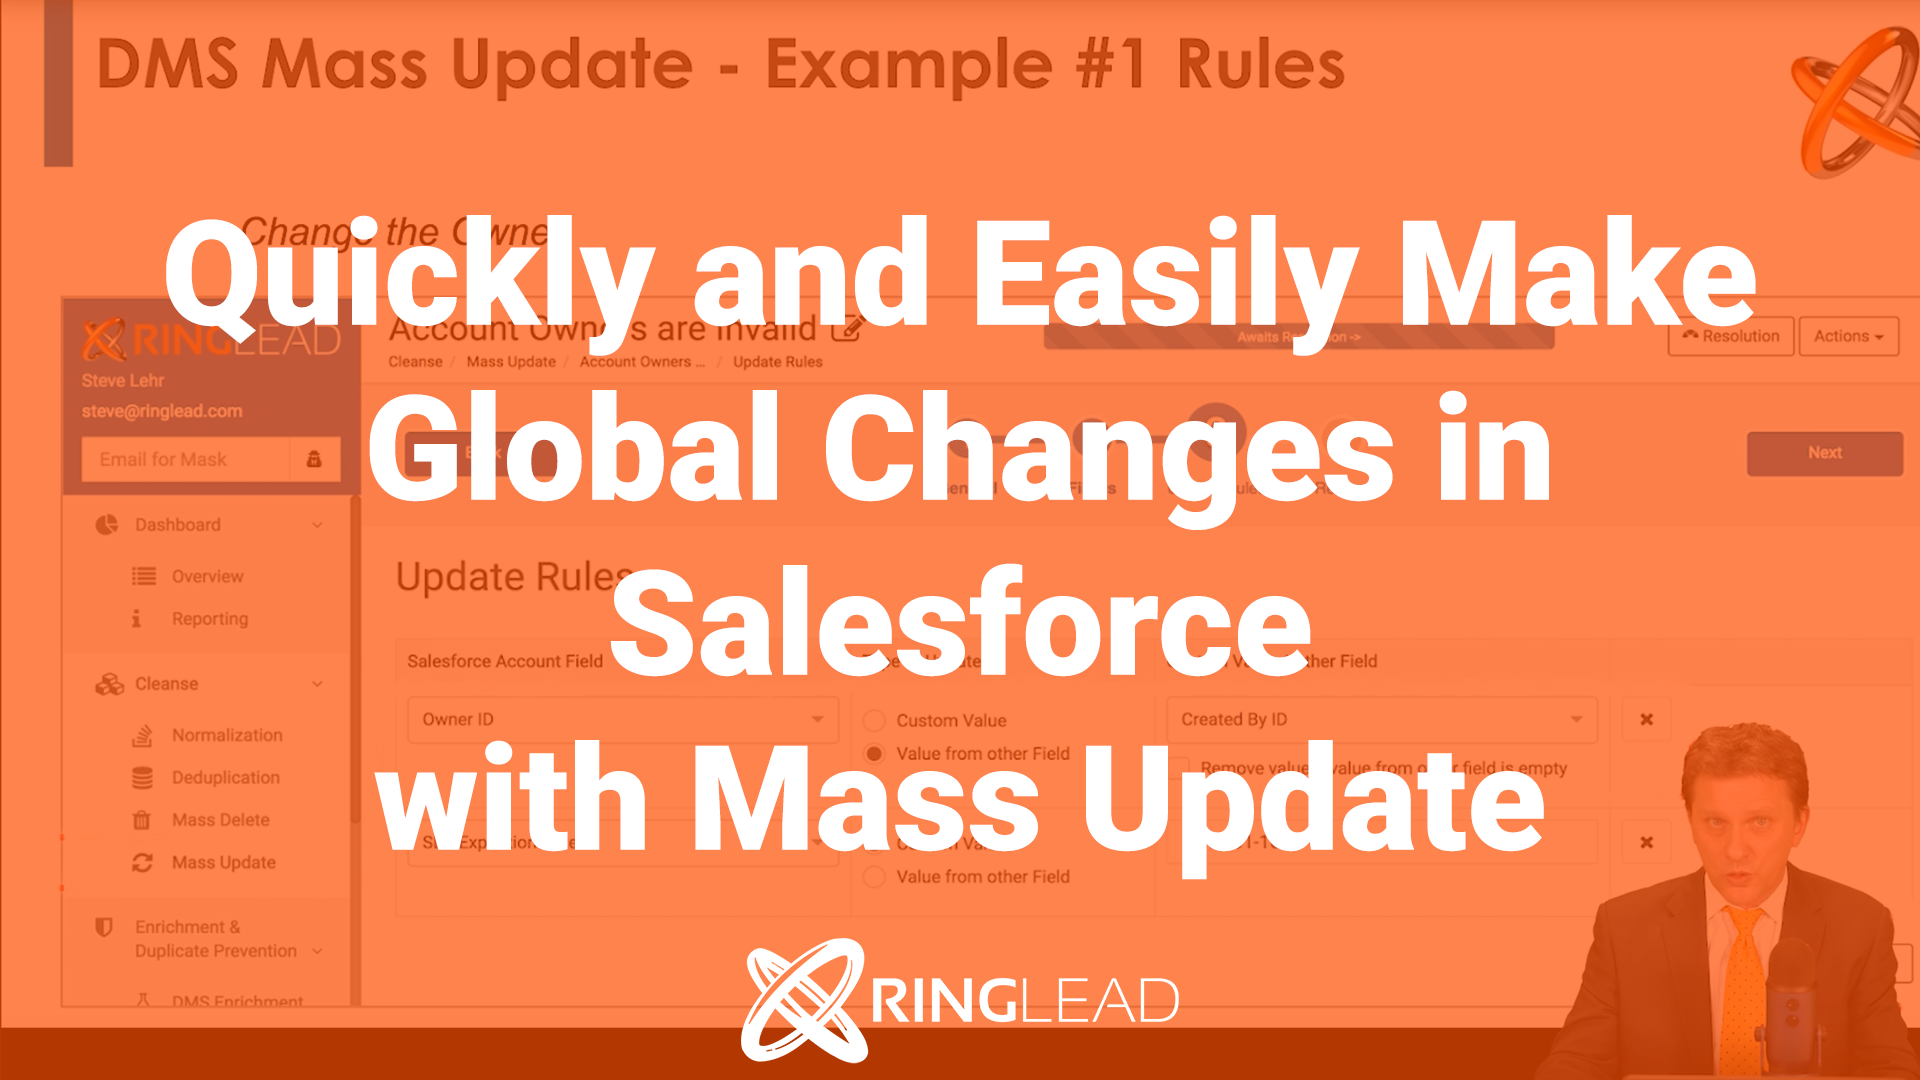 CLEANSE: Quickly and Easily Make Global Changes in Salesforce with Mass Update